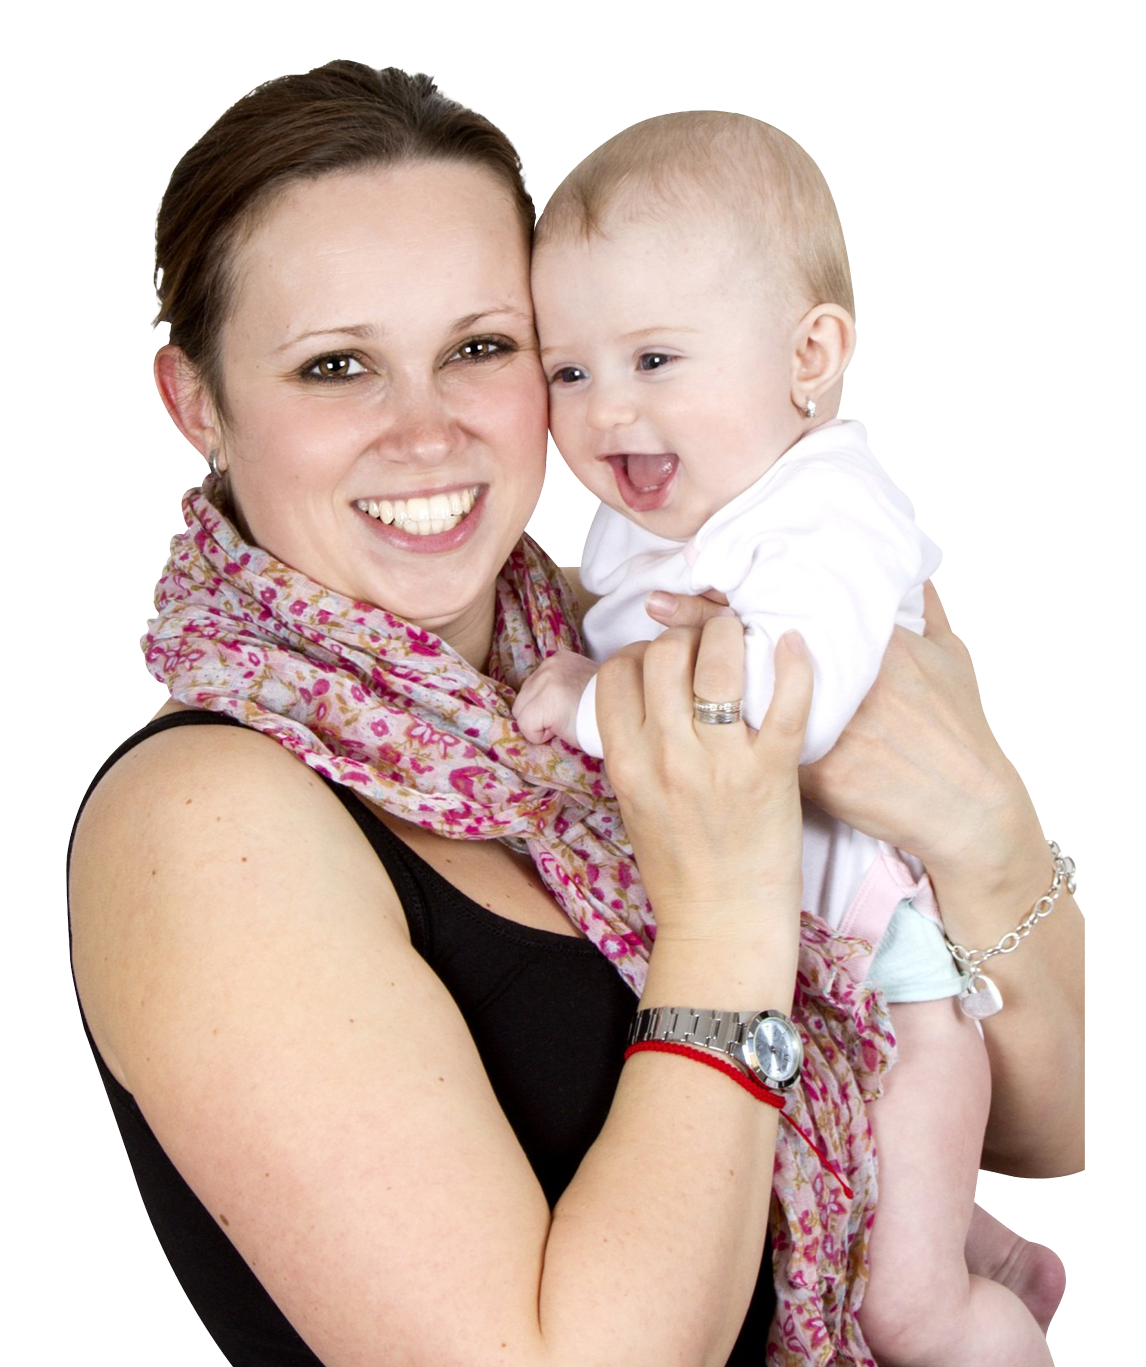 Mom And Baby Png - Mother Holding Sweet Baby Png Image, Transparent background PNG HD thumbnail